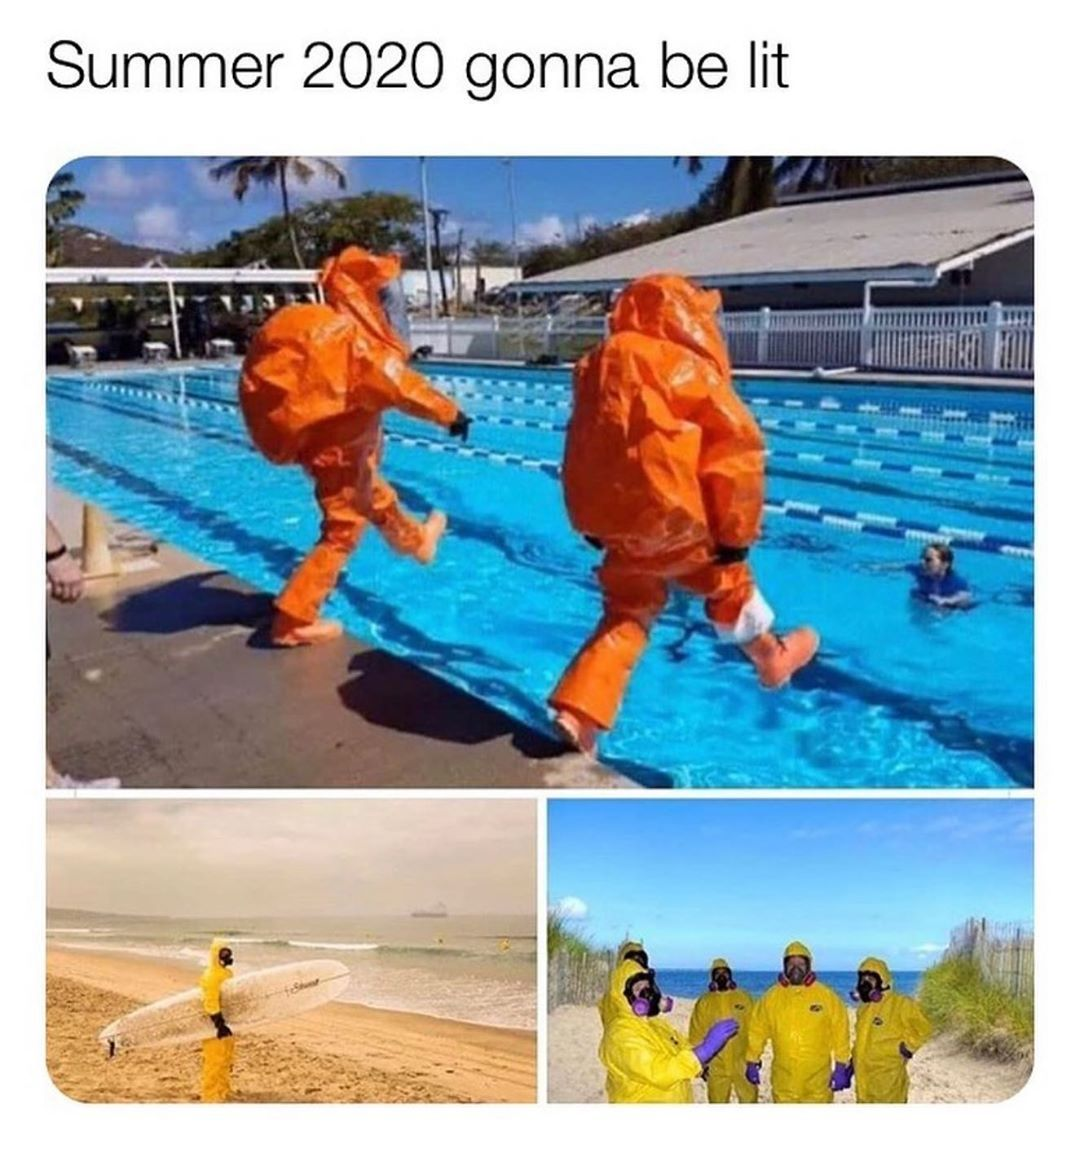 Pin by NO on good memes in 2020 Haha funny, Stupid funny